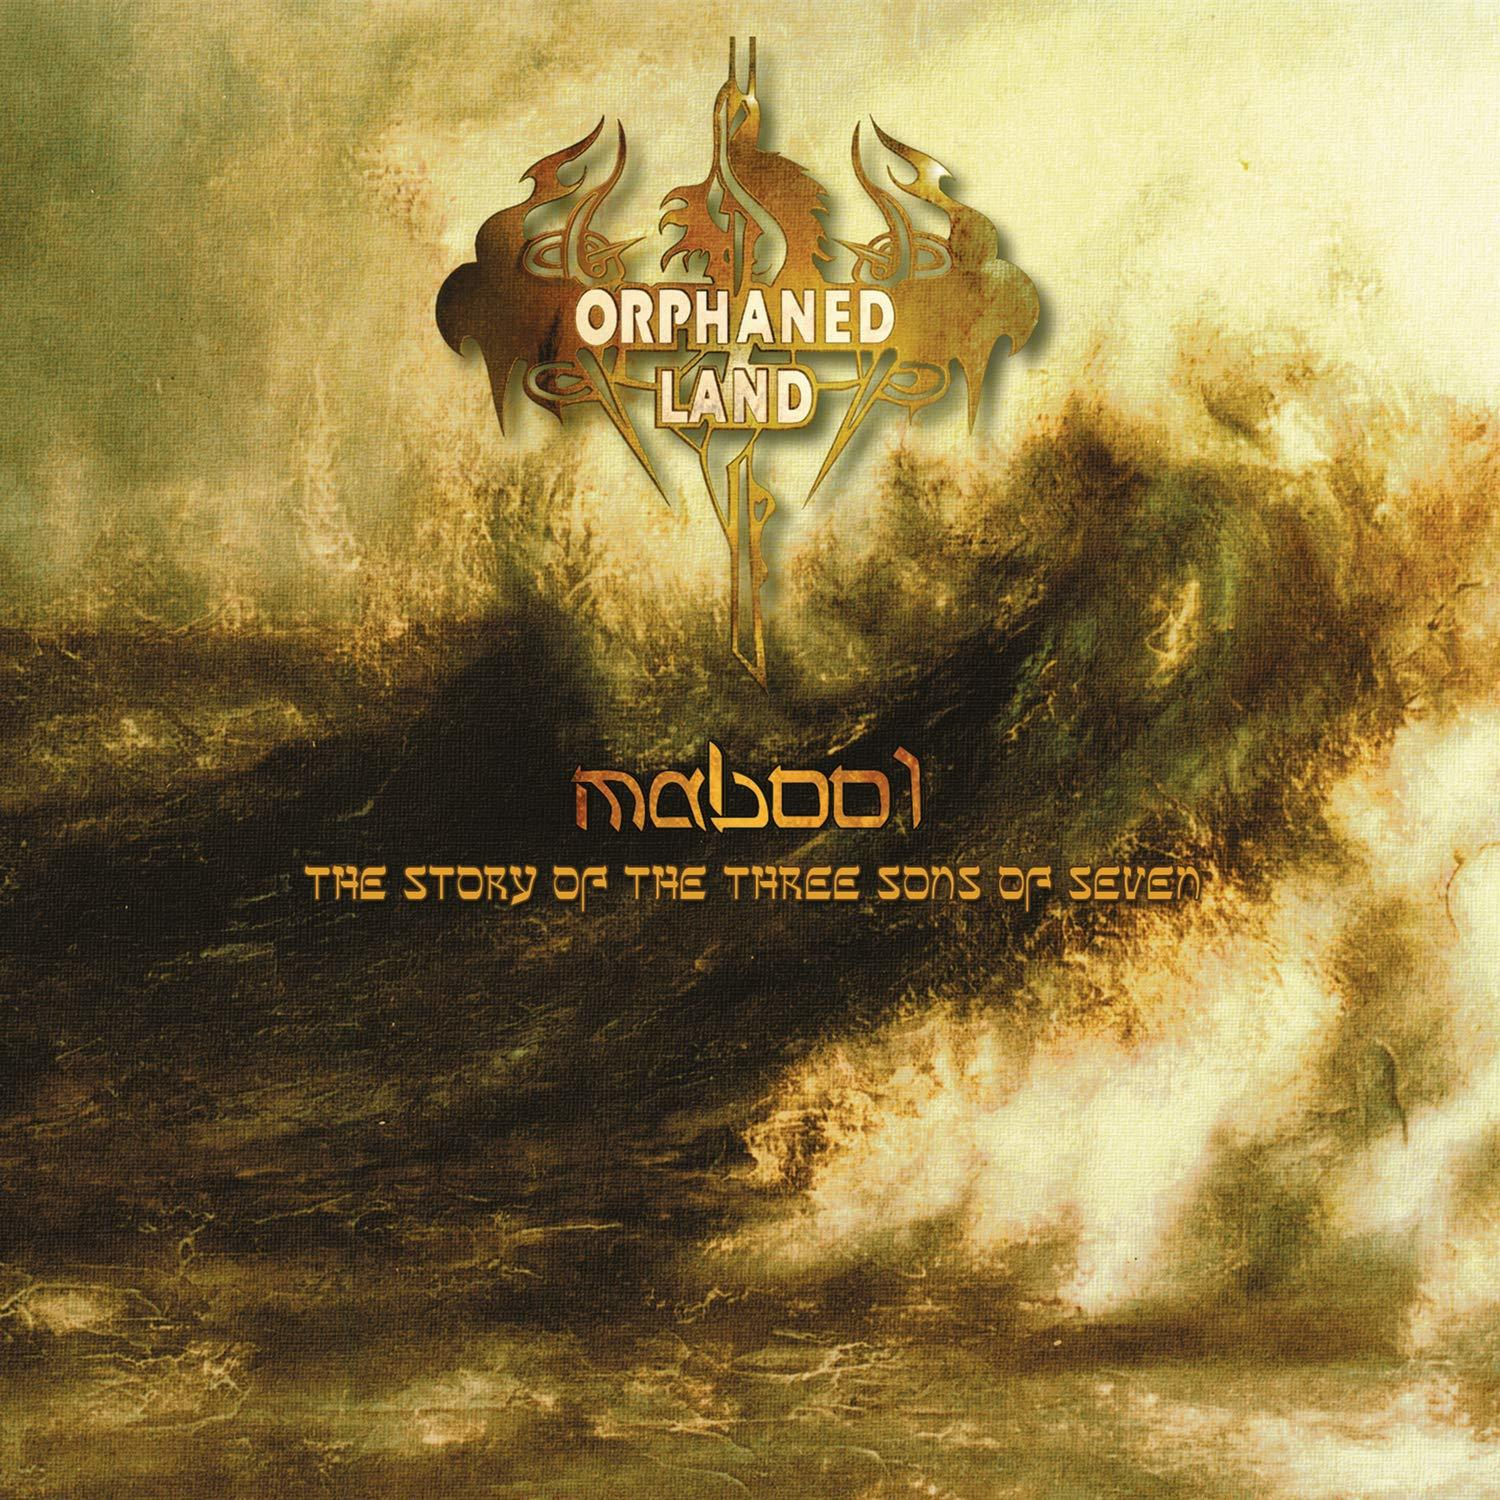 ORPHANED LAND Mabool The Story Of The Three Sons Of Seven (2019 reissue) CD.jpg